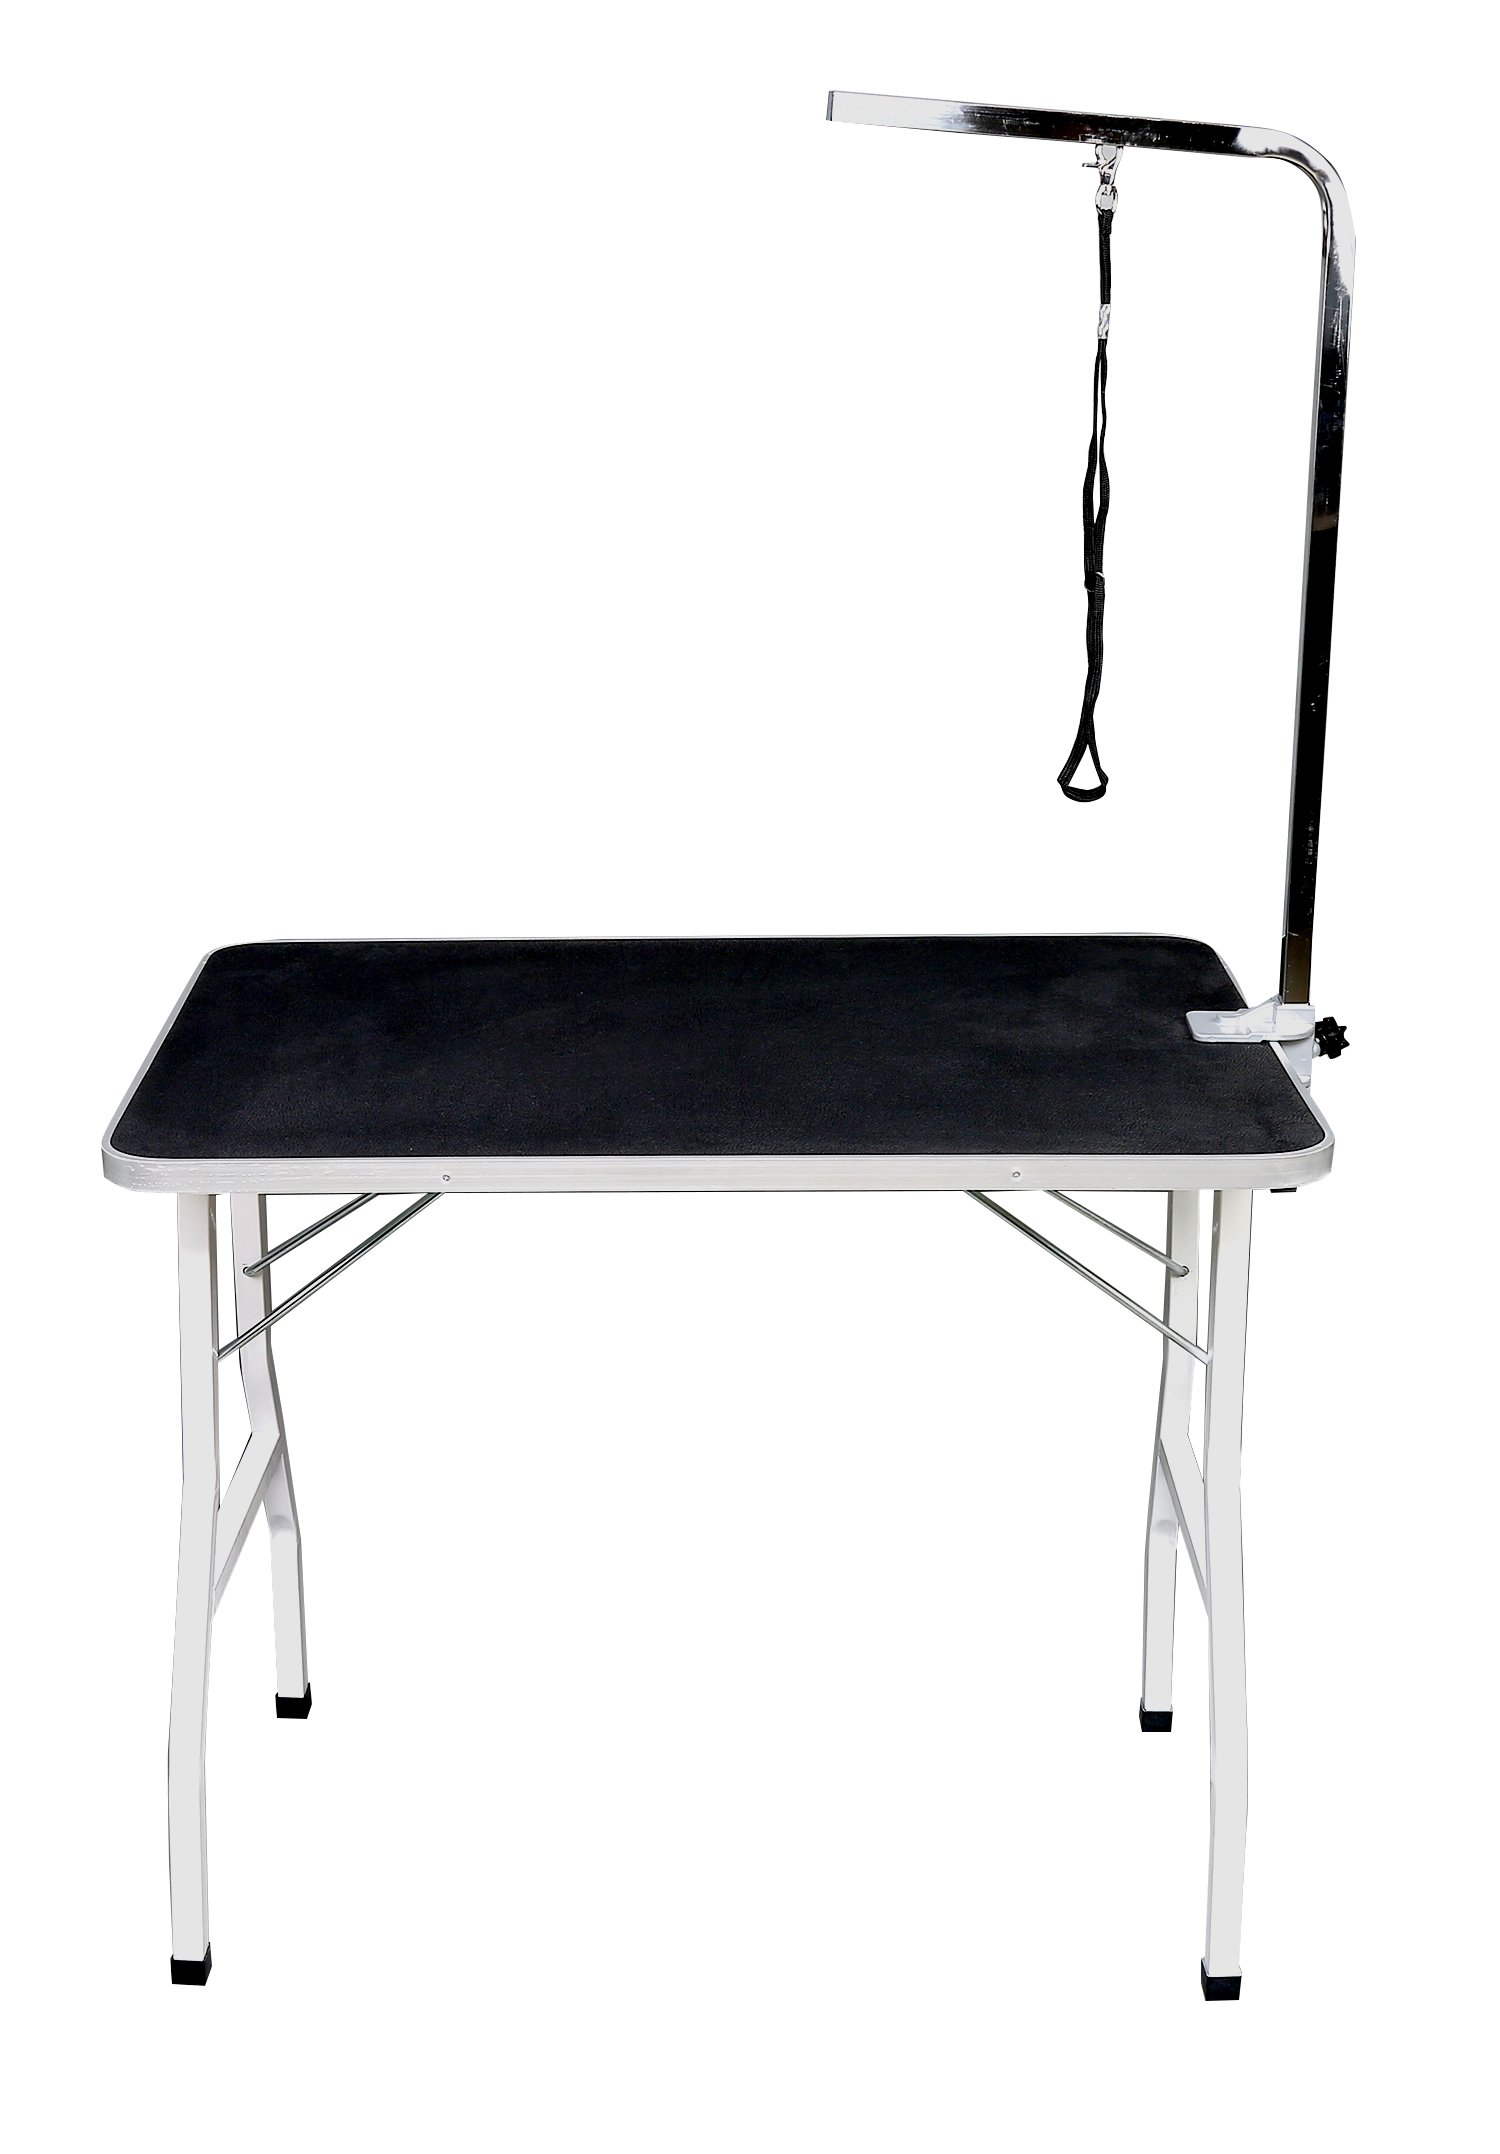 ExacMe Large Pet Dog Grooming Table With Arm/Noose 36-inch 5014